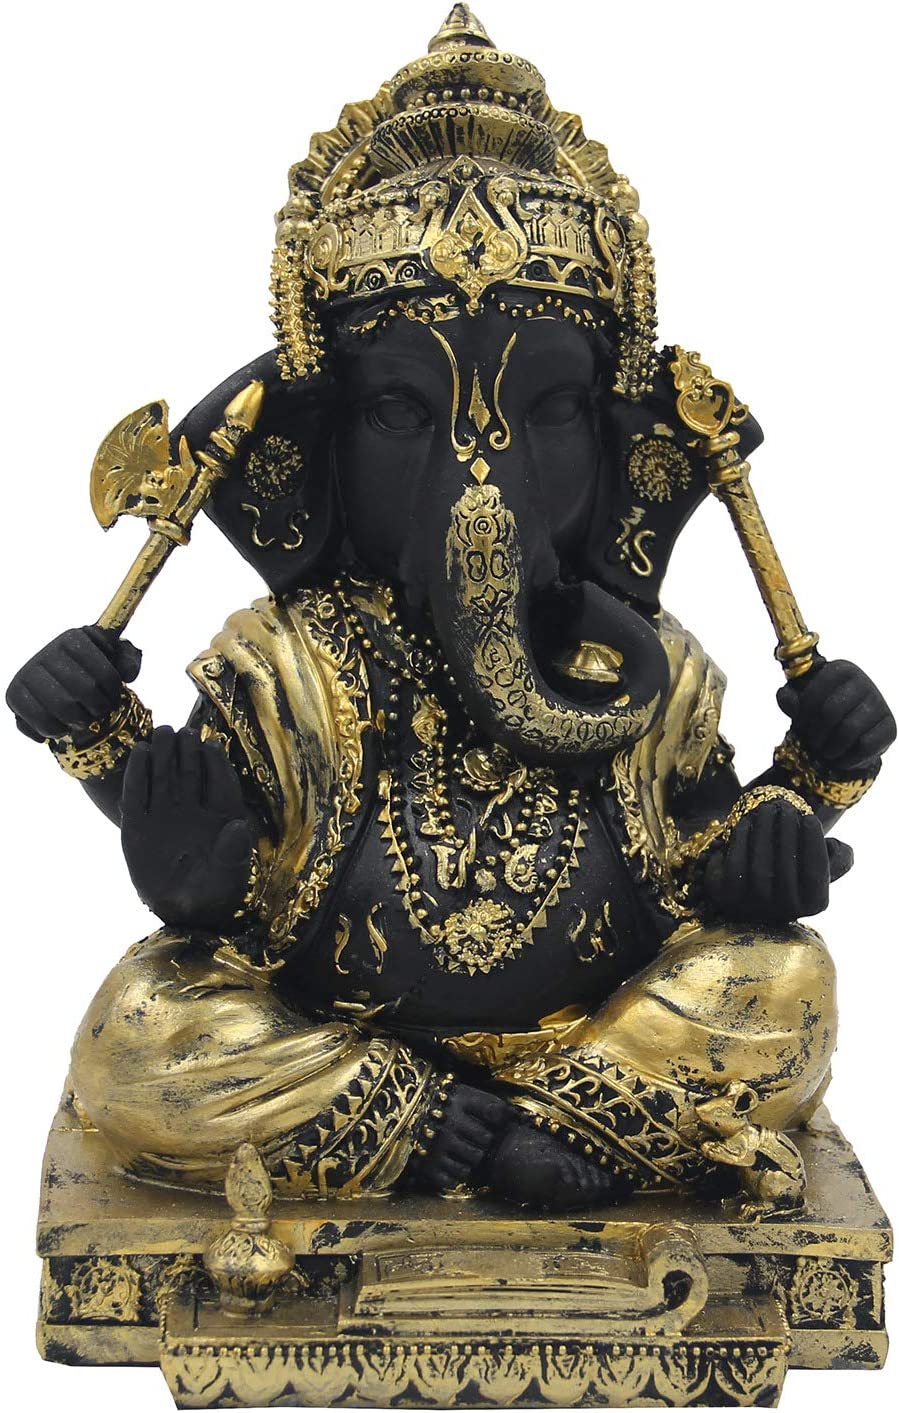 DharmaObjects Ganesh Ganesha Las Vegas Mall Manufacturer regenerated product Statue Gold INCHES 6.5